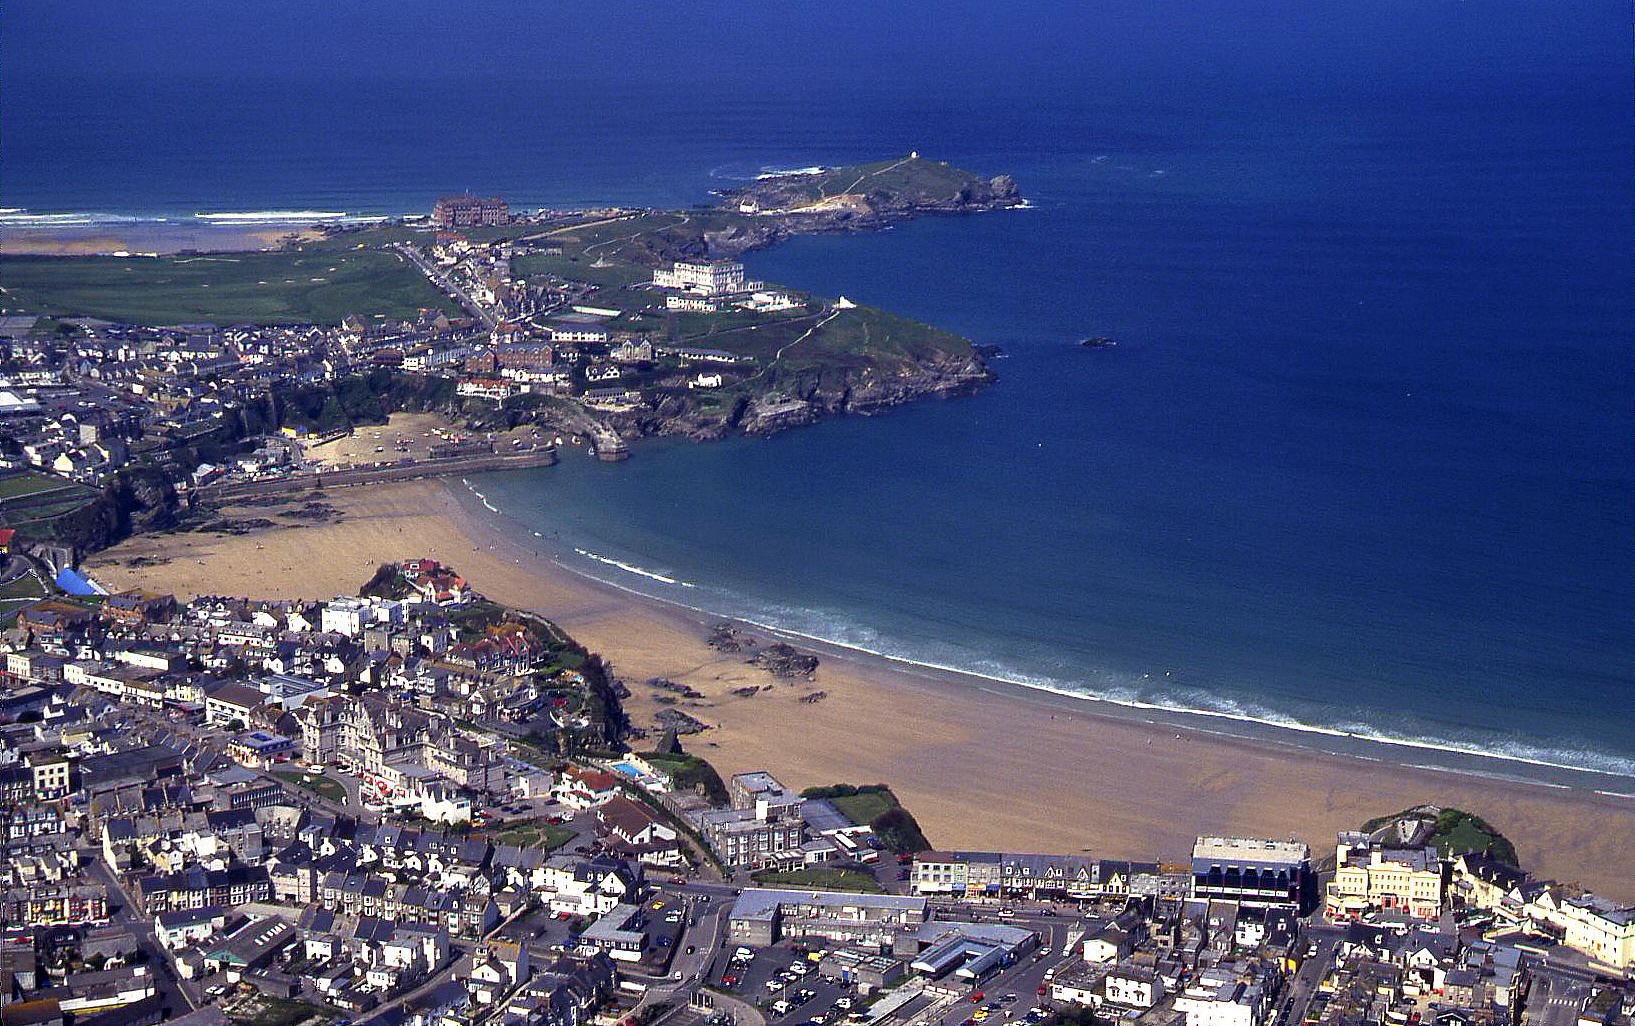 Newquay, Cornwall in April 2000